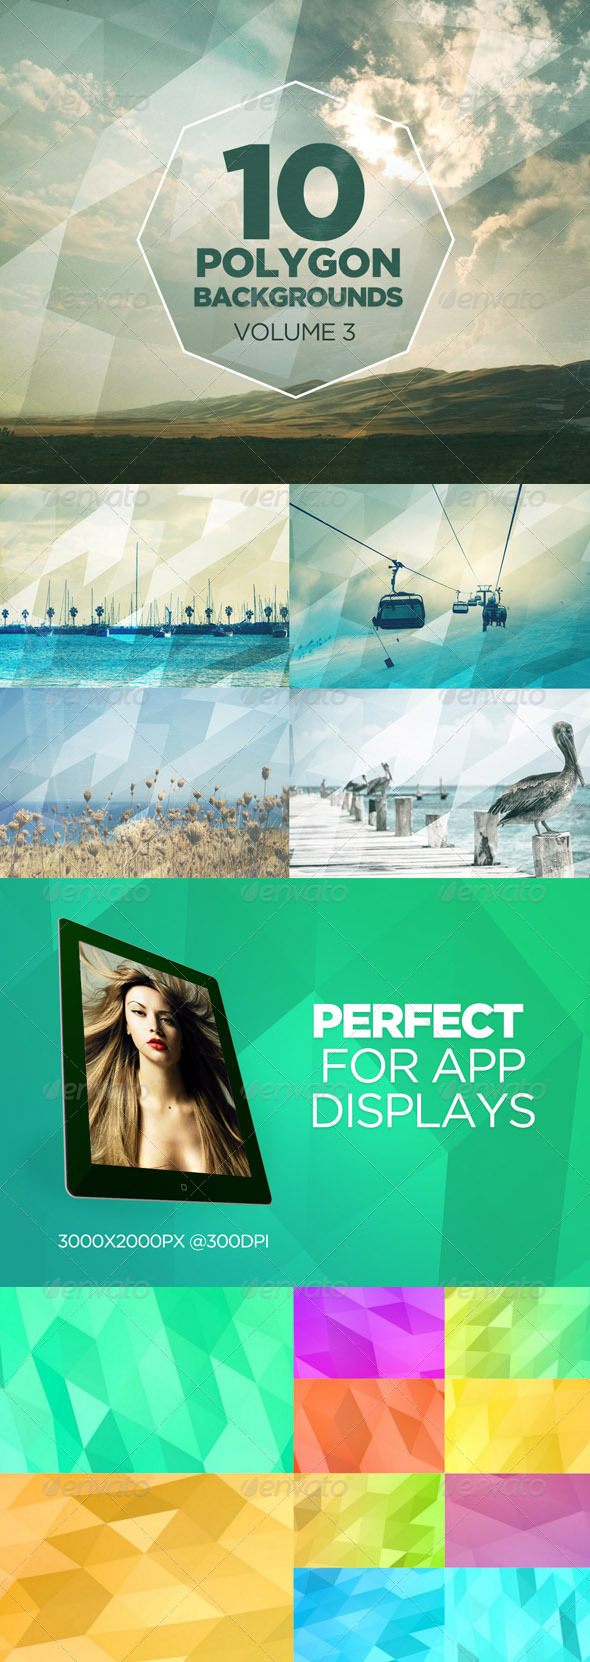 GraphicRiver 10 Polygon Backgrounds Volume 3 7662098